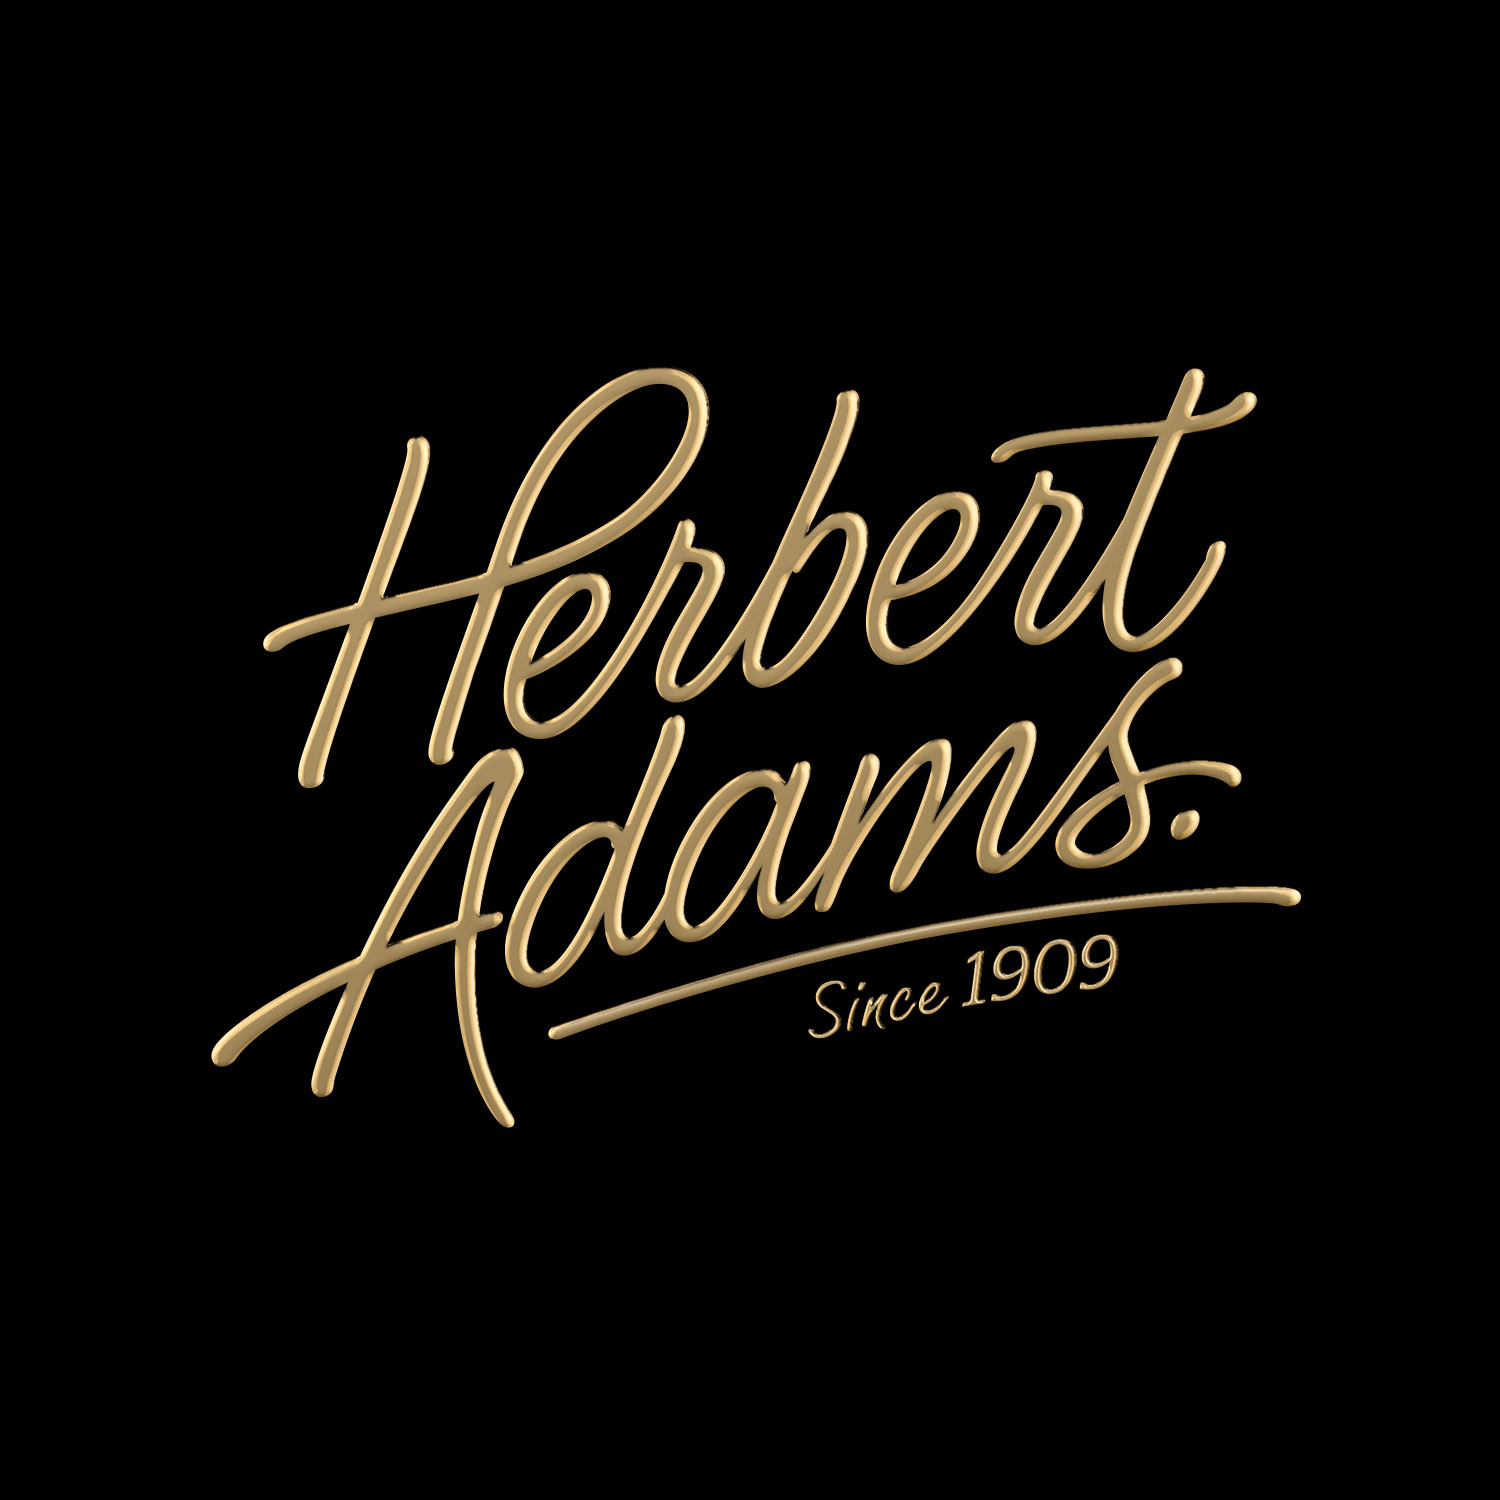 Herber Adams_Current Logo.jpg